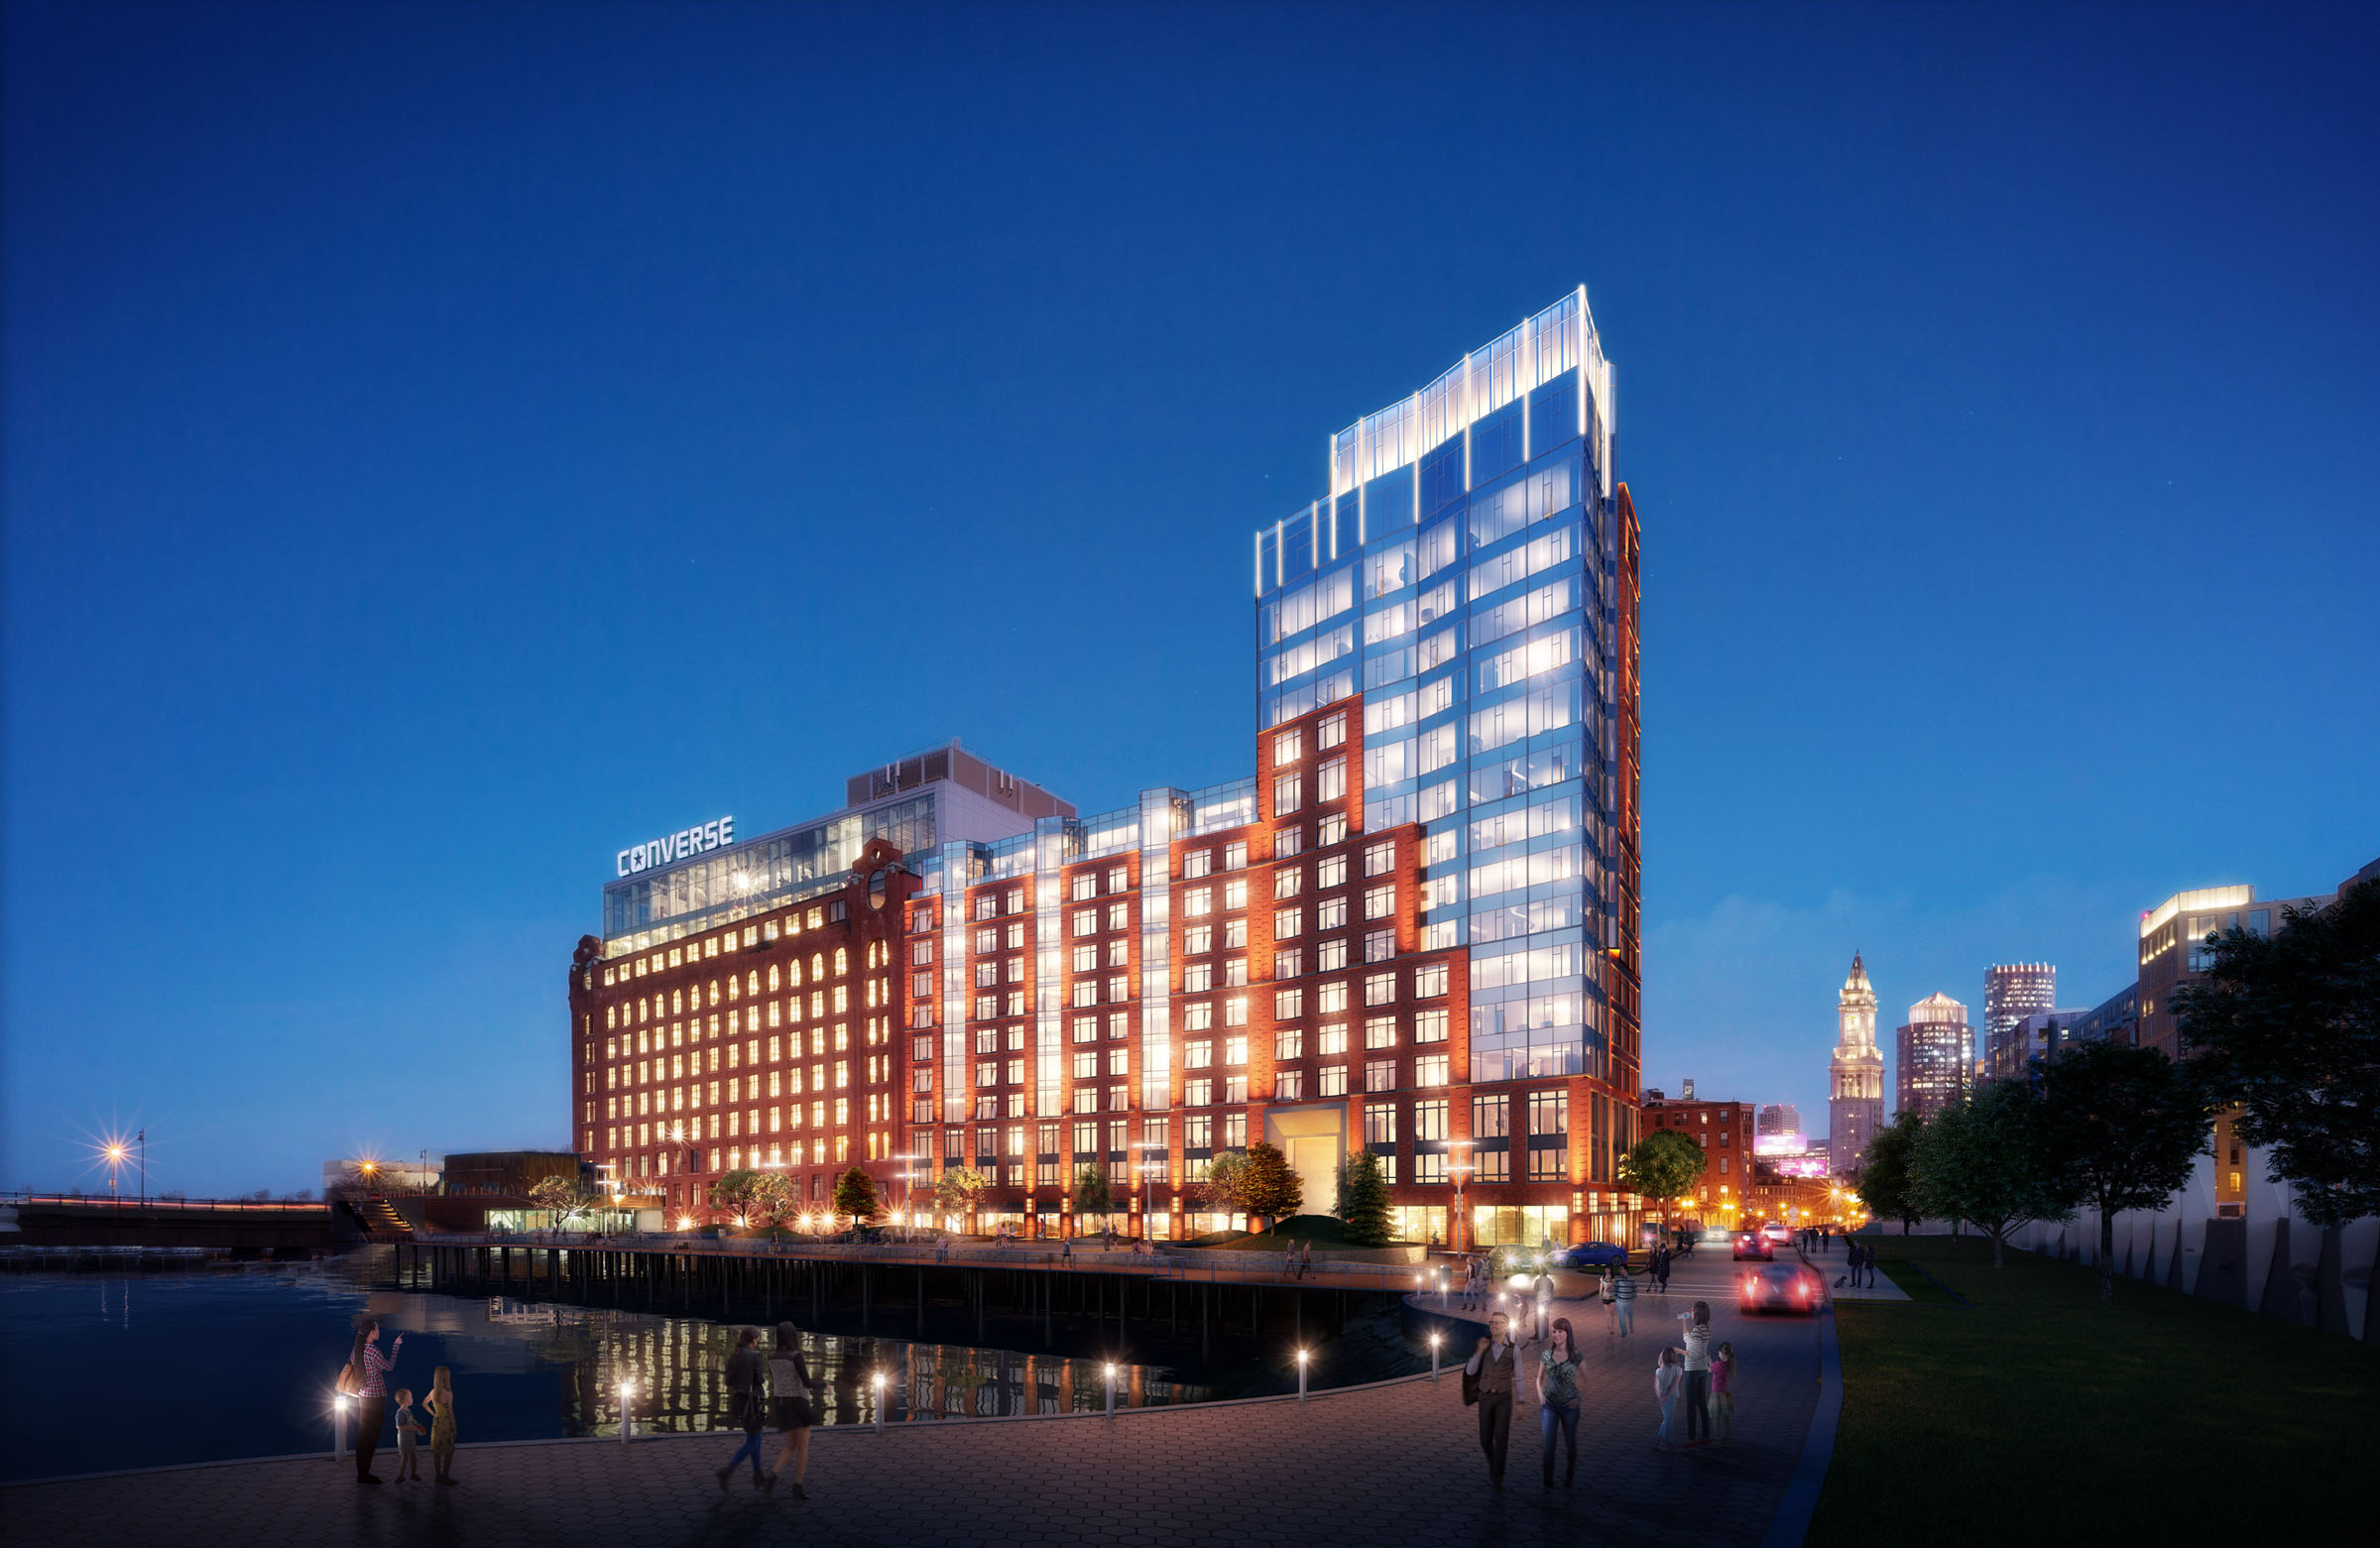 Lovejoy wharf 131 beverly street bulfinch triangle boston office retail luxury condominium development related beal